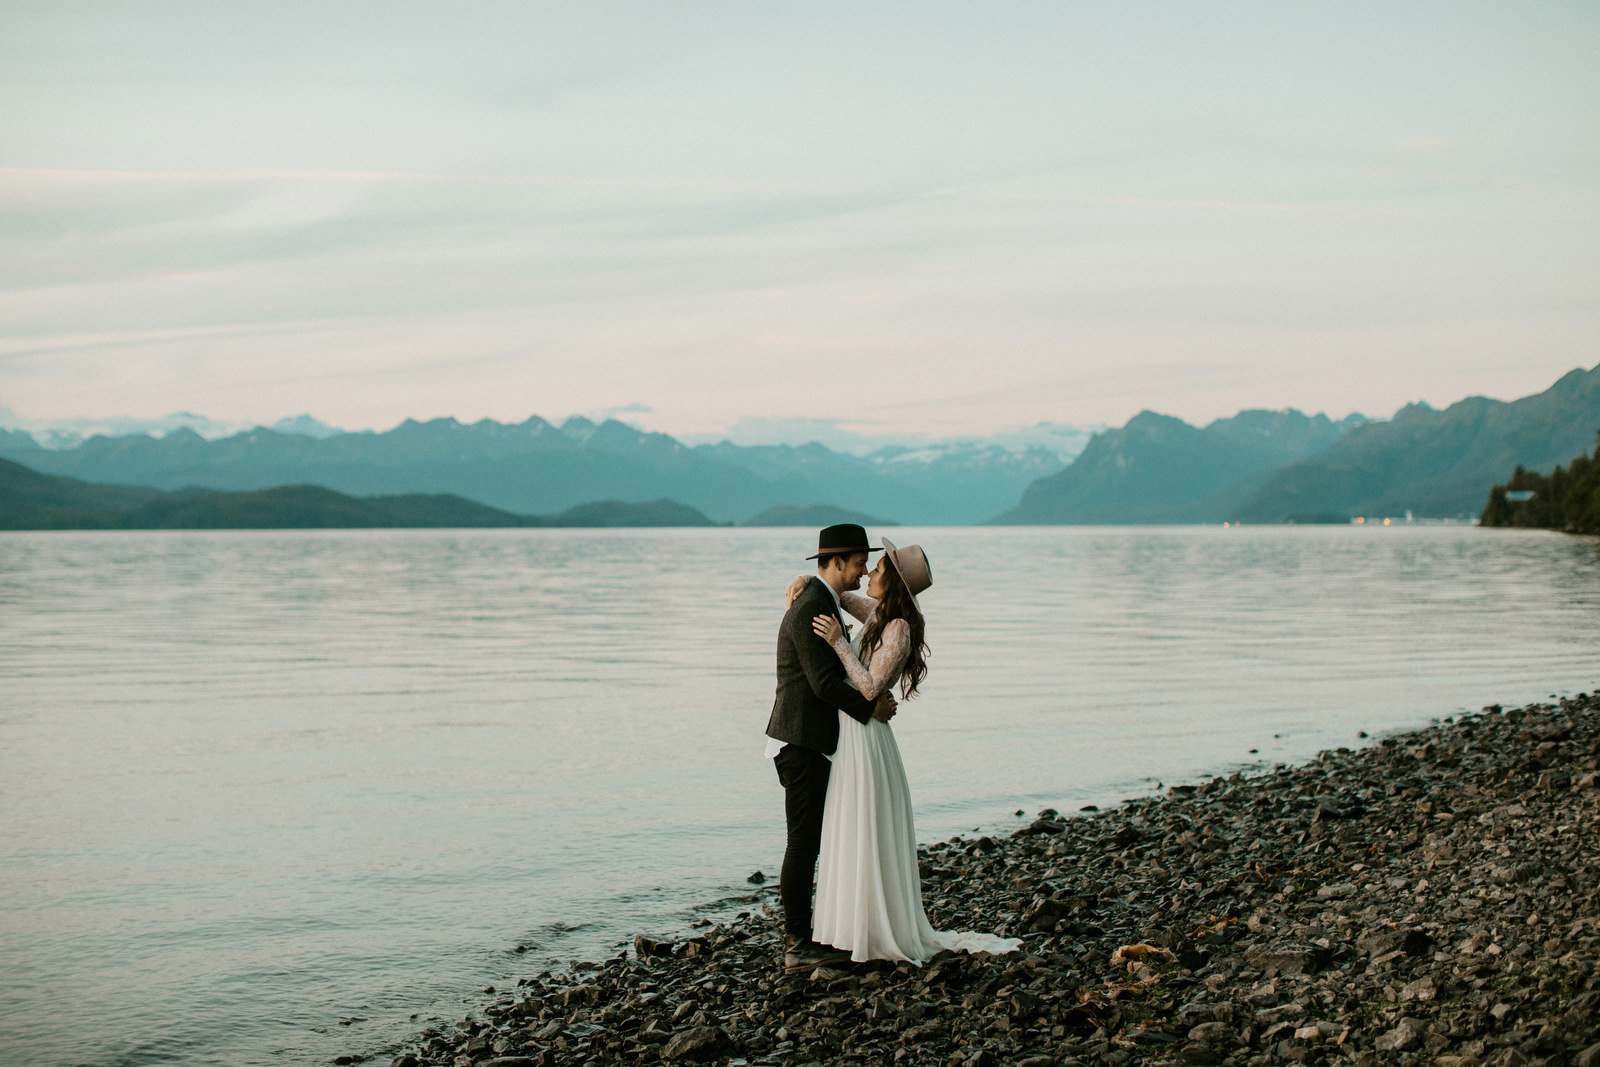 athena-and-camron-alaska-elopement-wedding-inspiration-india-earl-athena-grace-glacier-lagoon-wedding62